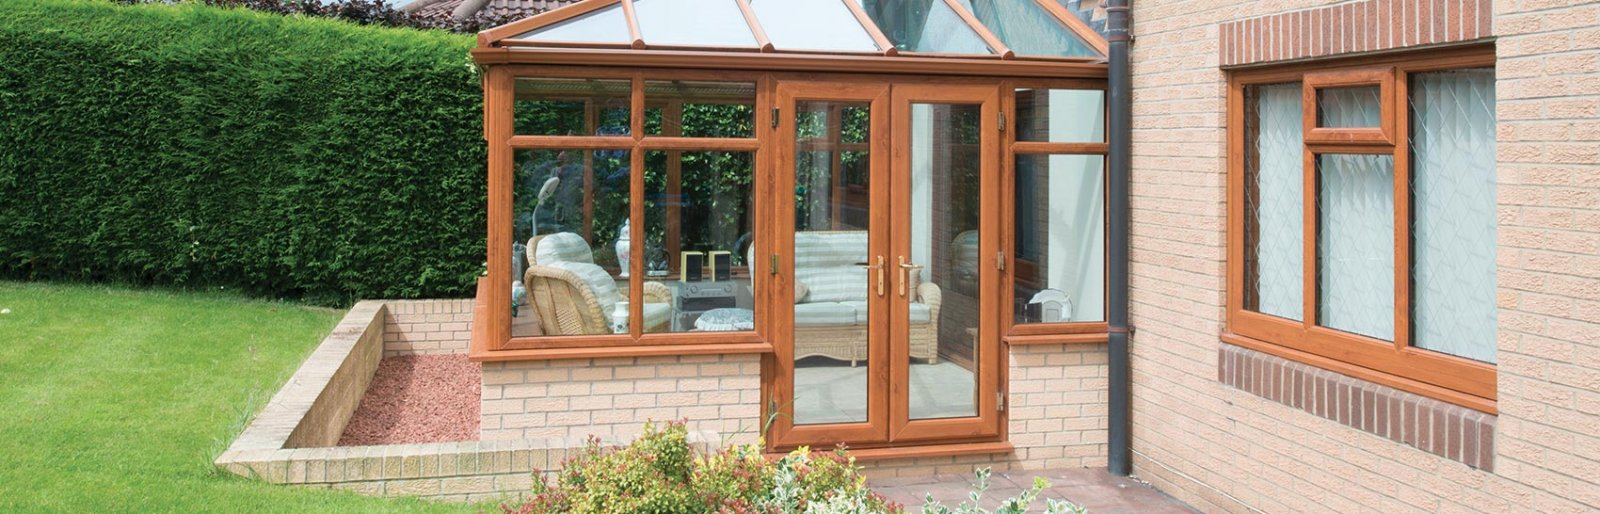 Wood Effect Upvc French Doors Part - 33: Oak Effect UPVC French Door For A Conservatory